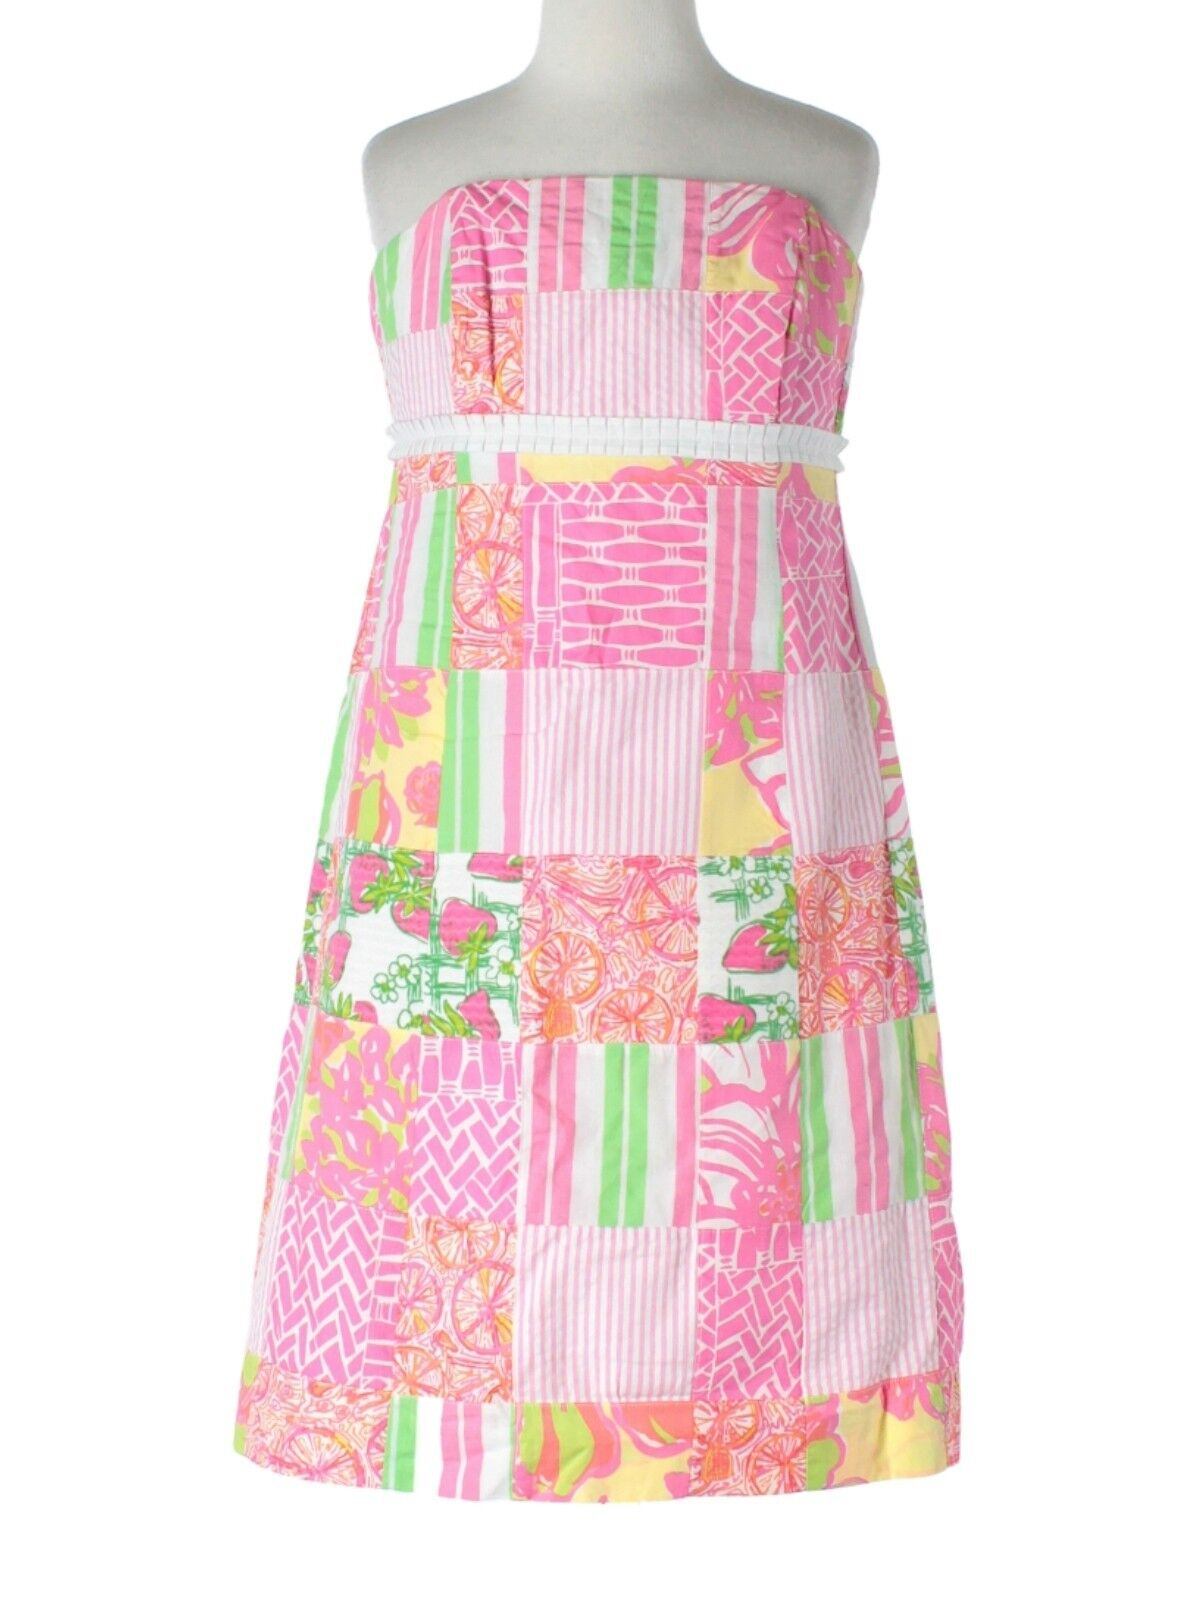 damen Lilly Pulitzer Local Patch Patchwork Bowen Strapless Dress Größe 2